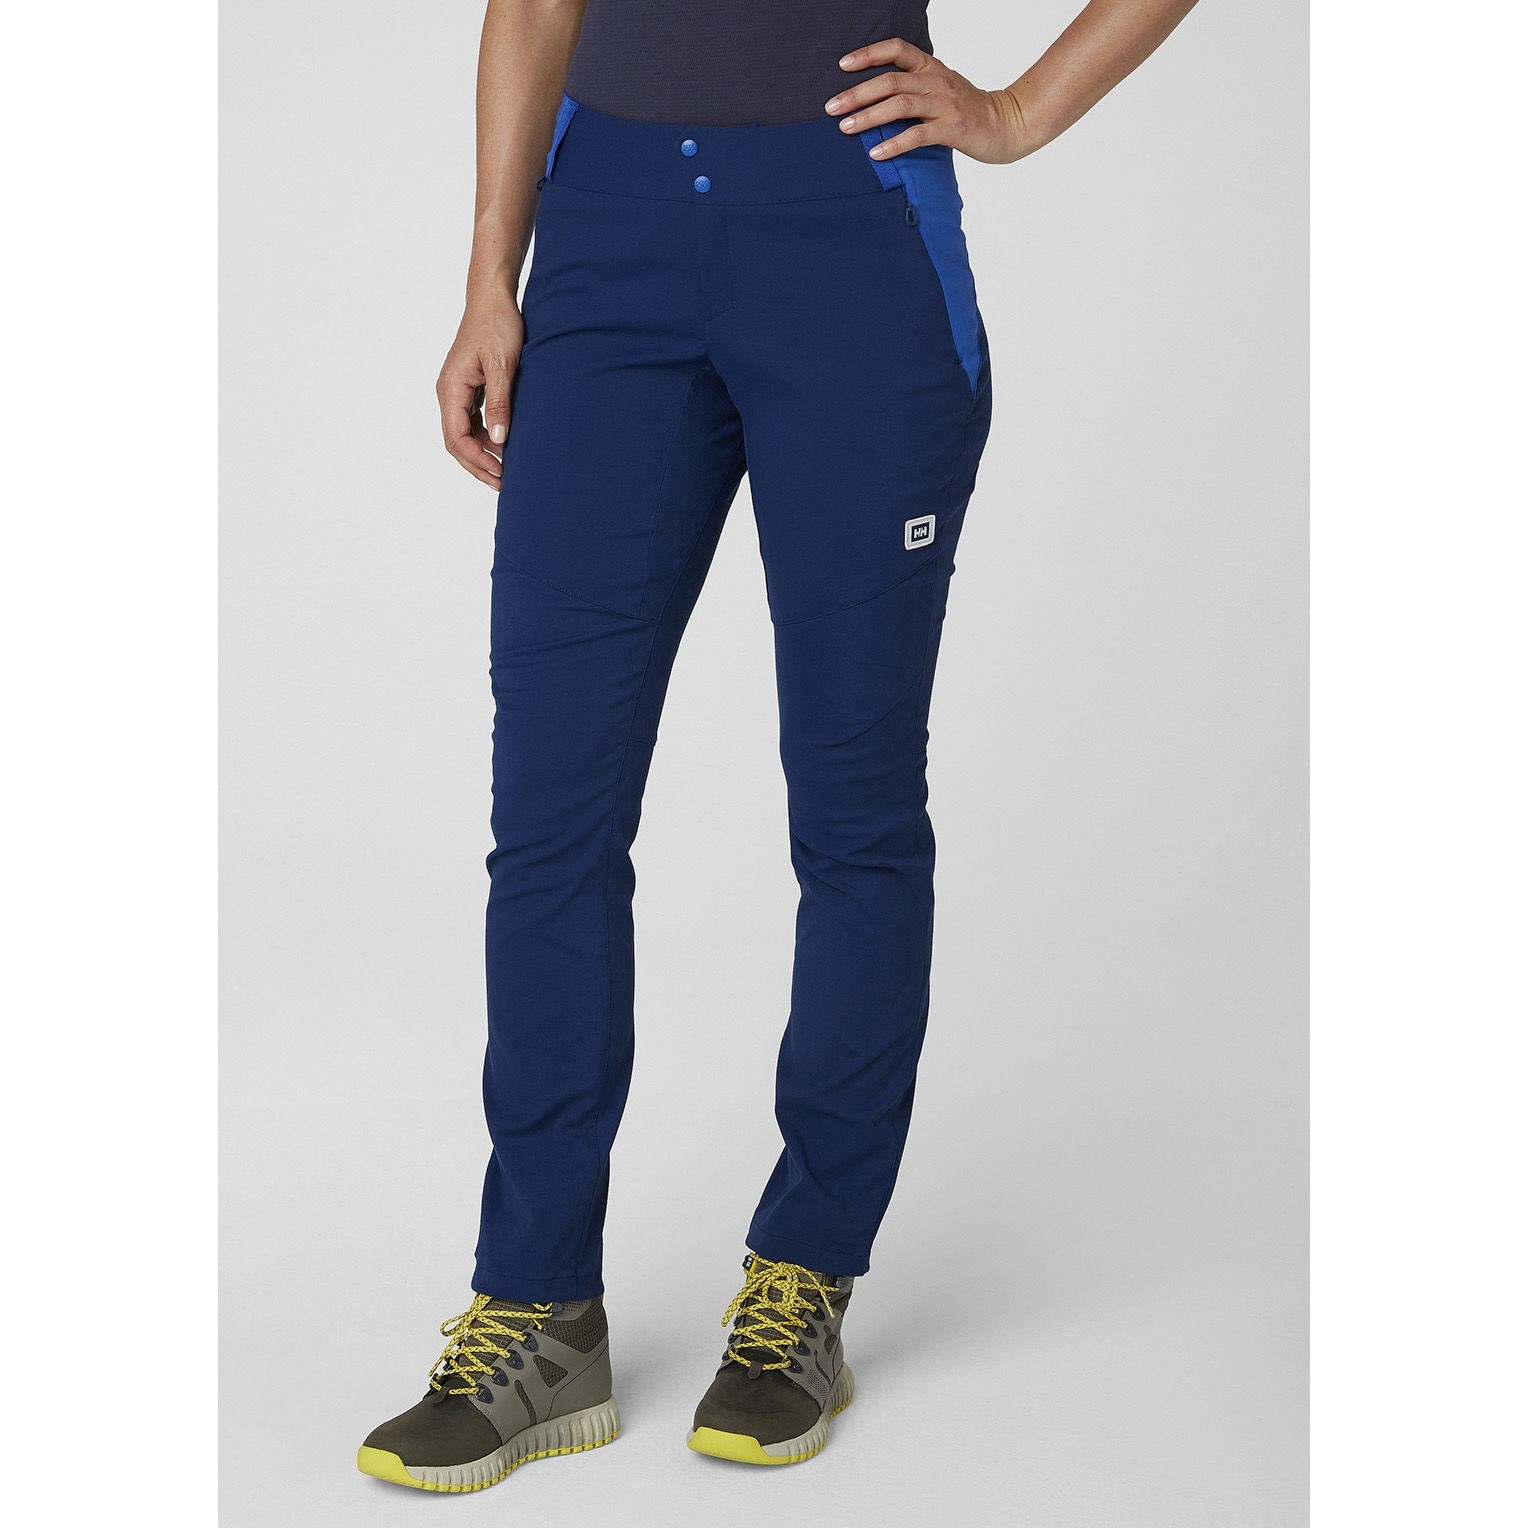 396706be Bilde: Helly Hansen Skar Pant, turbukse dame - Catalina Blue 62900-541 ...